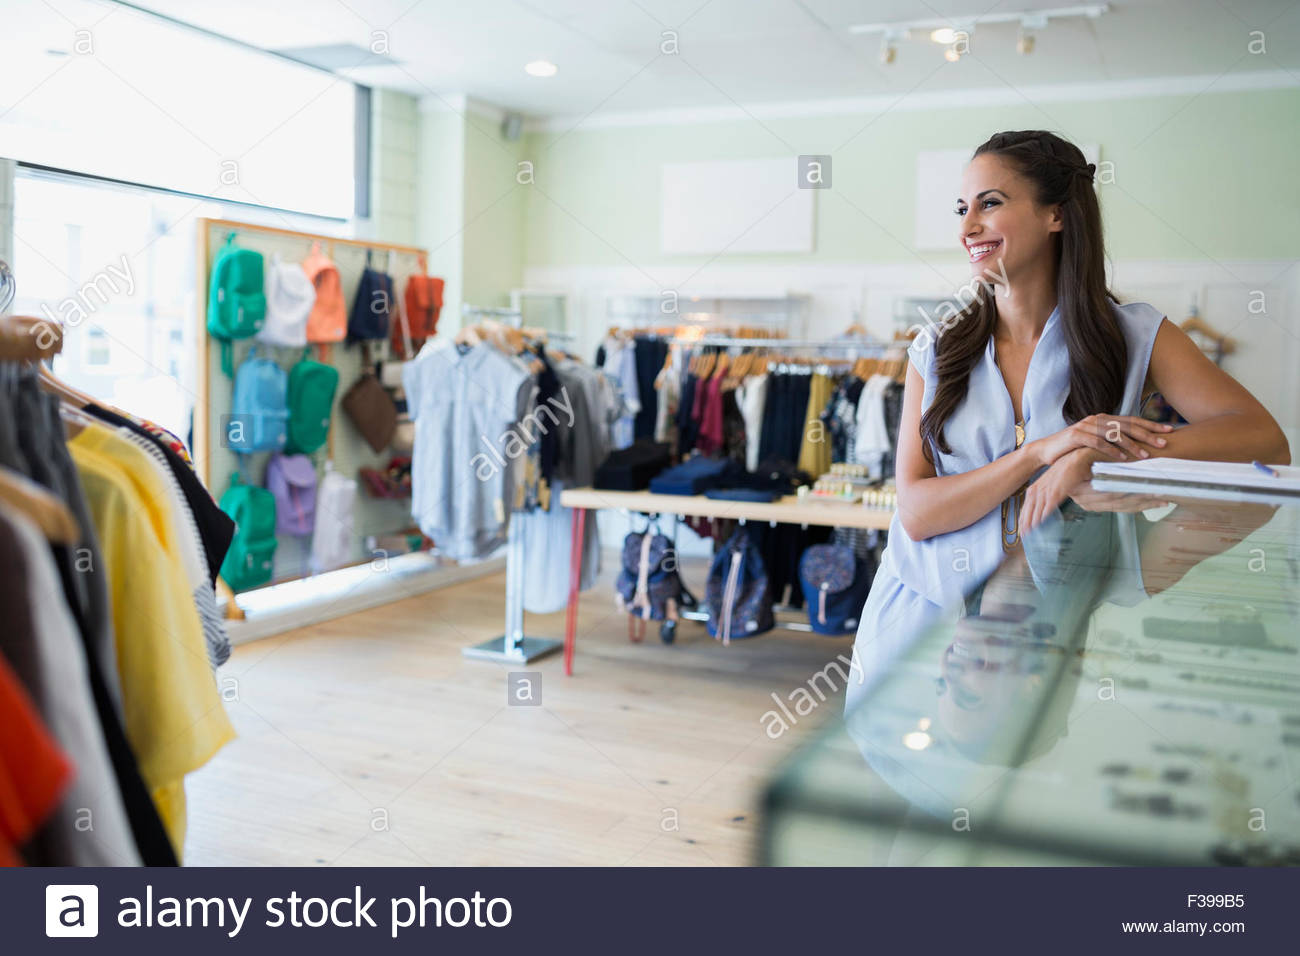 Sitting leaning on vitrine en boutique Photo Stock